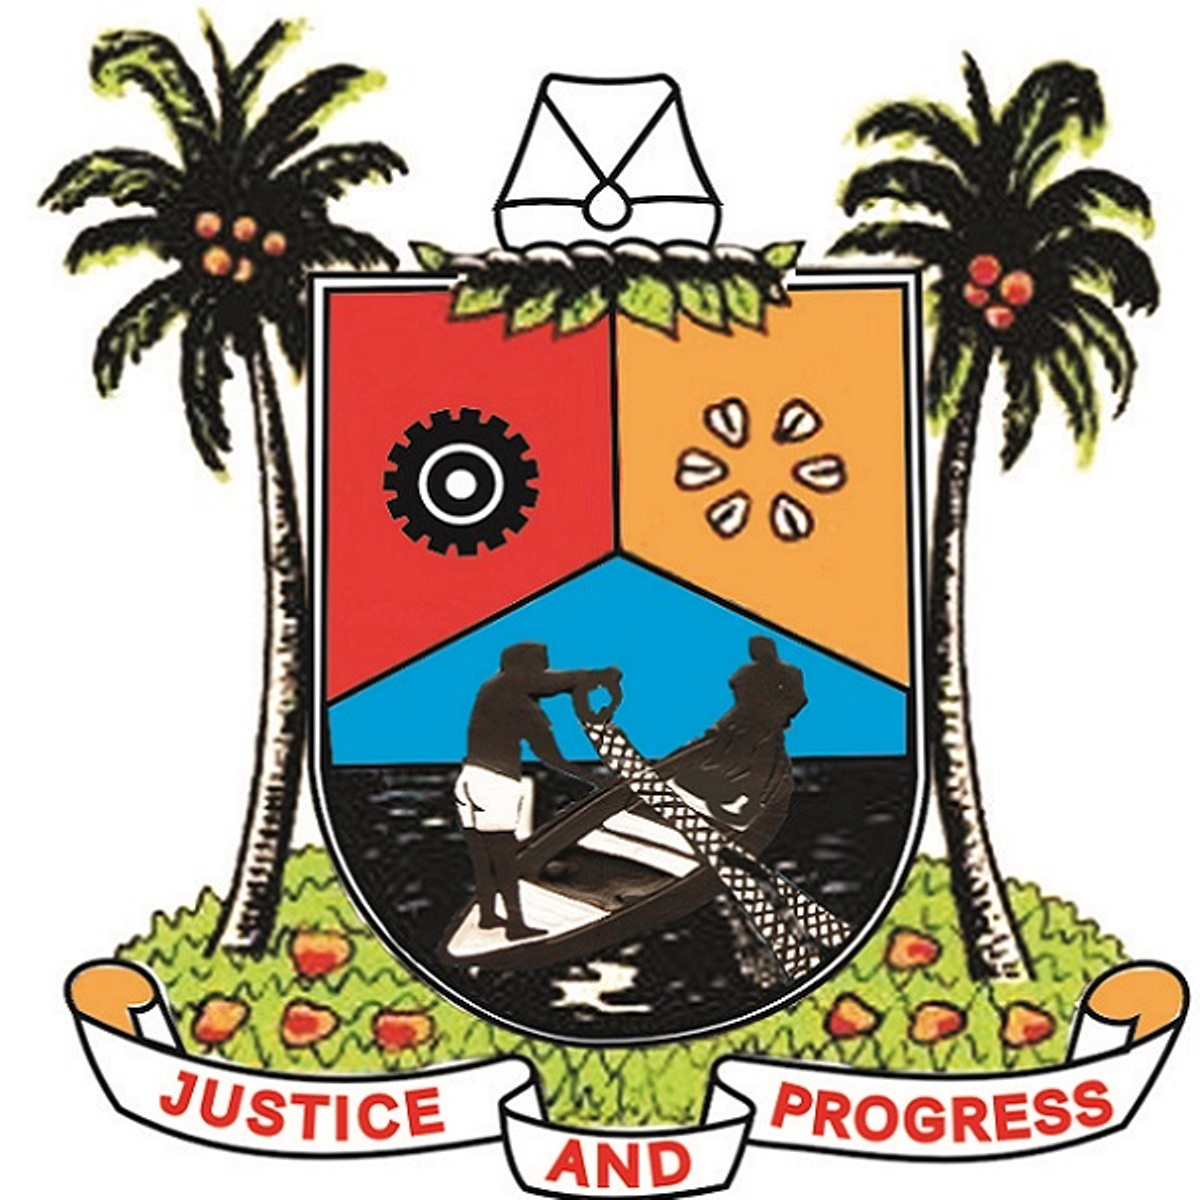 Lagos and the revitalisation of public health